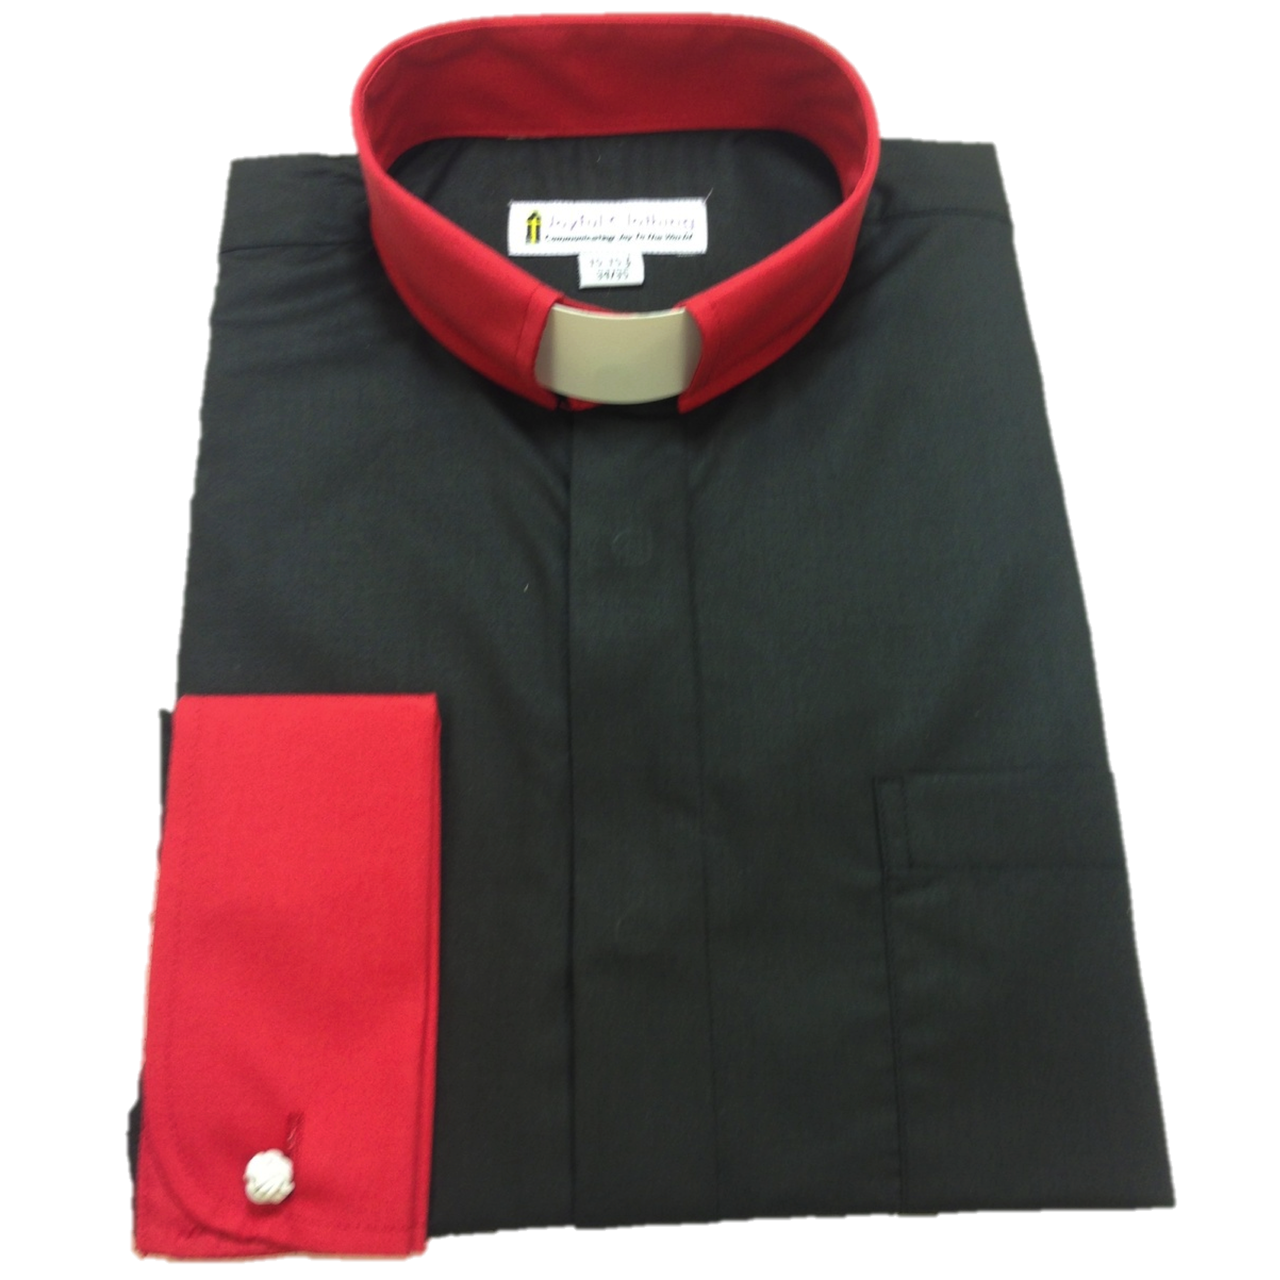 130. Men's Contrast Tab-Collar Clergy Shirt - Black/Red Collar